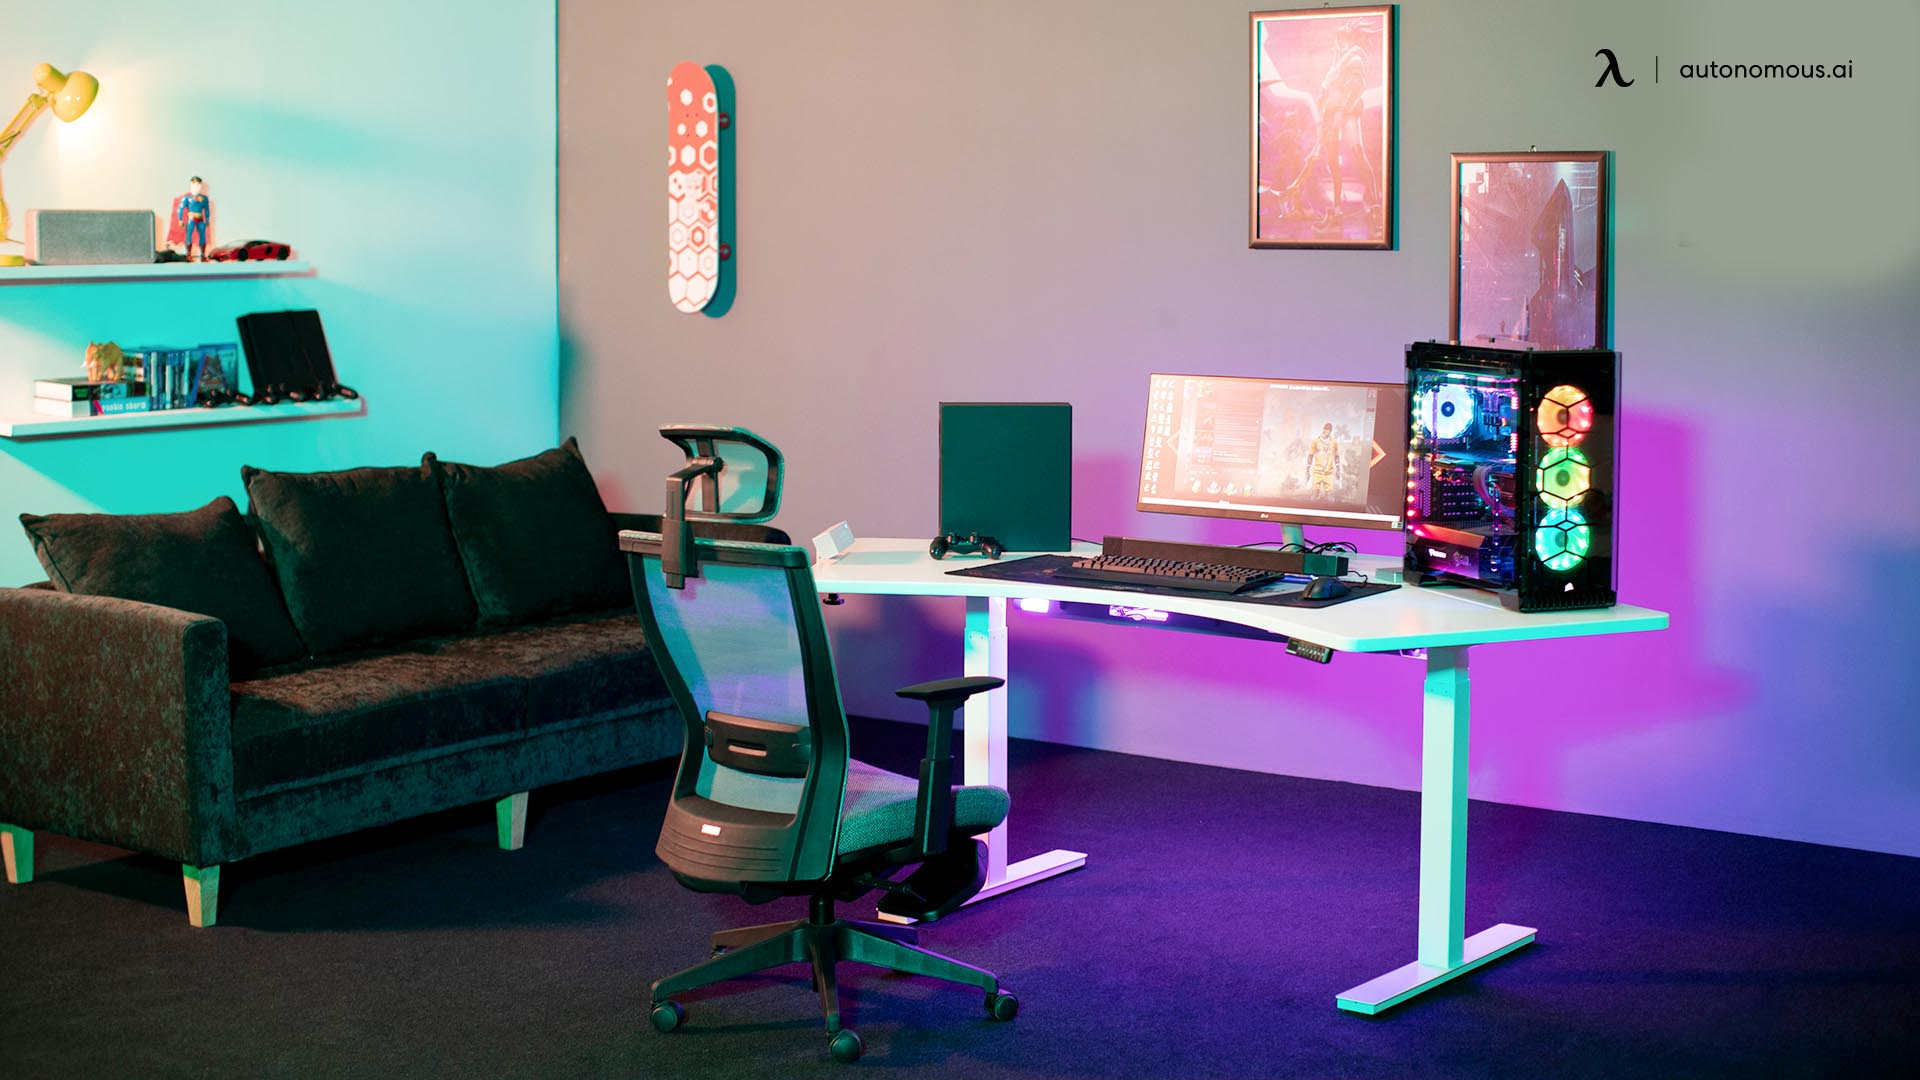 What Gaming Setup Fits Your Needs the Best